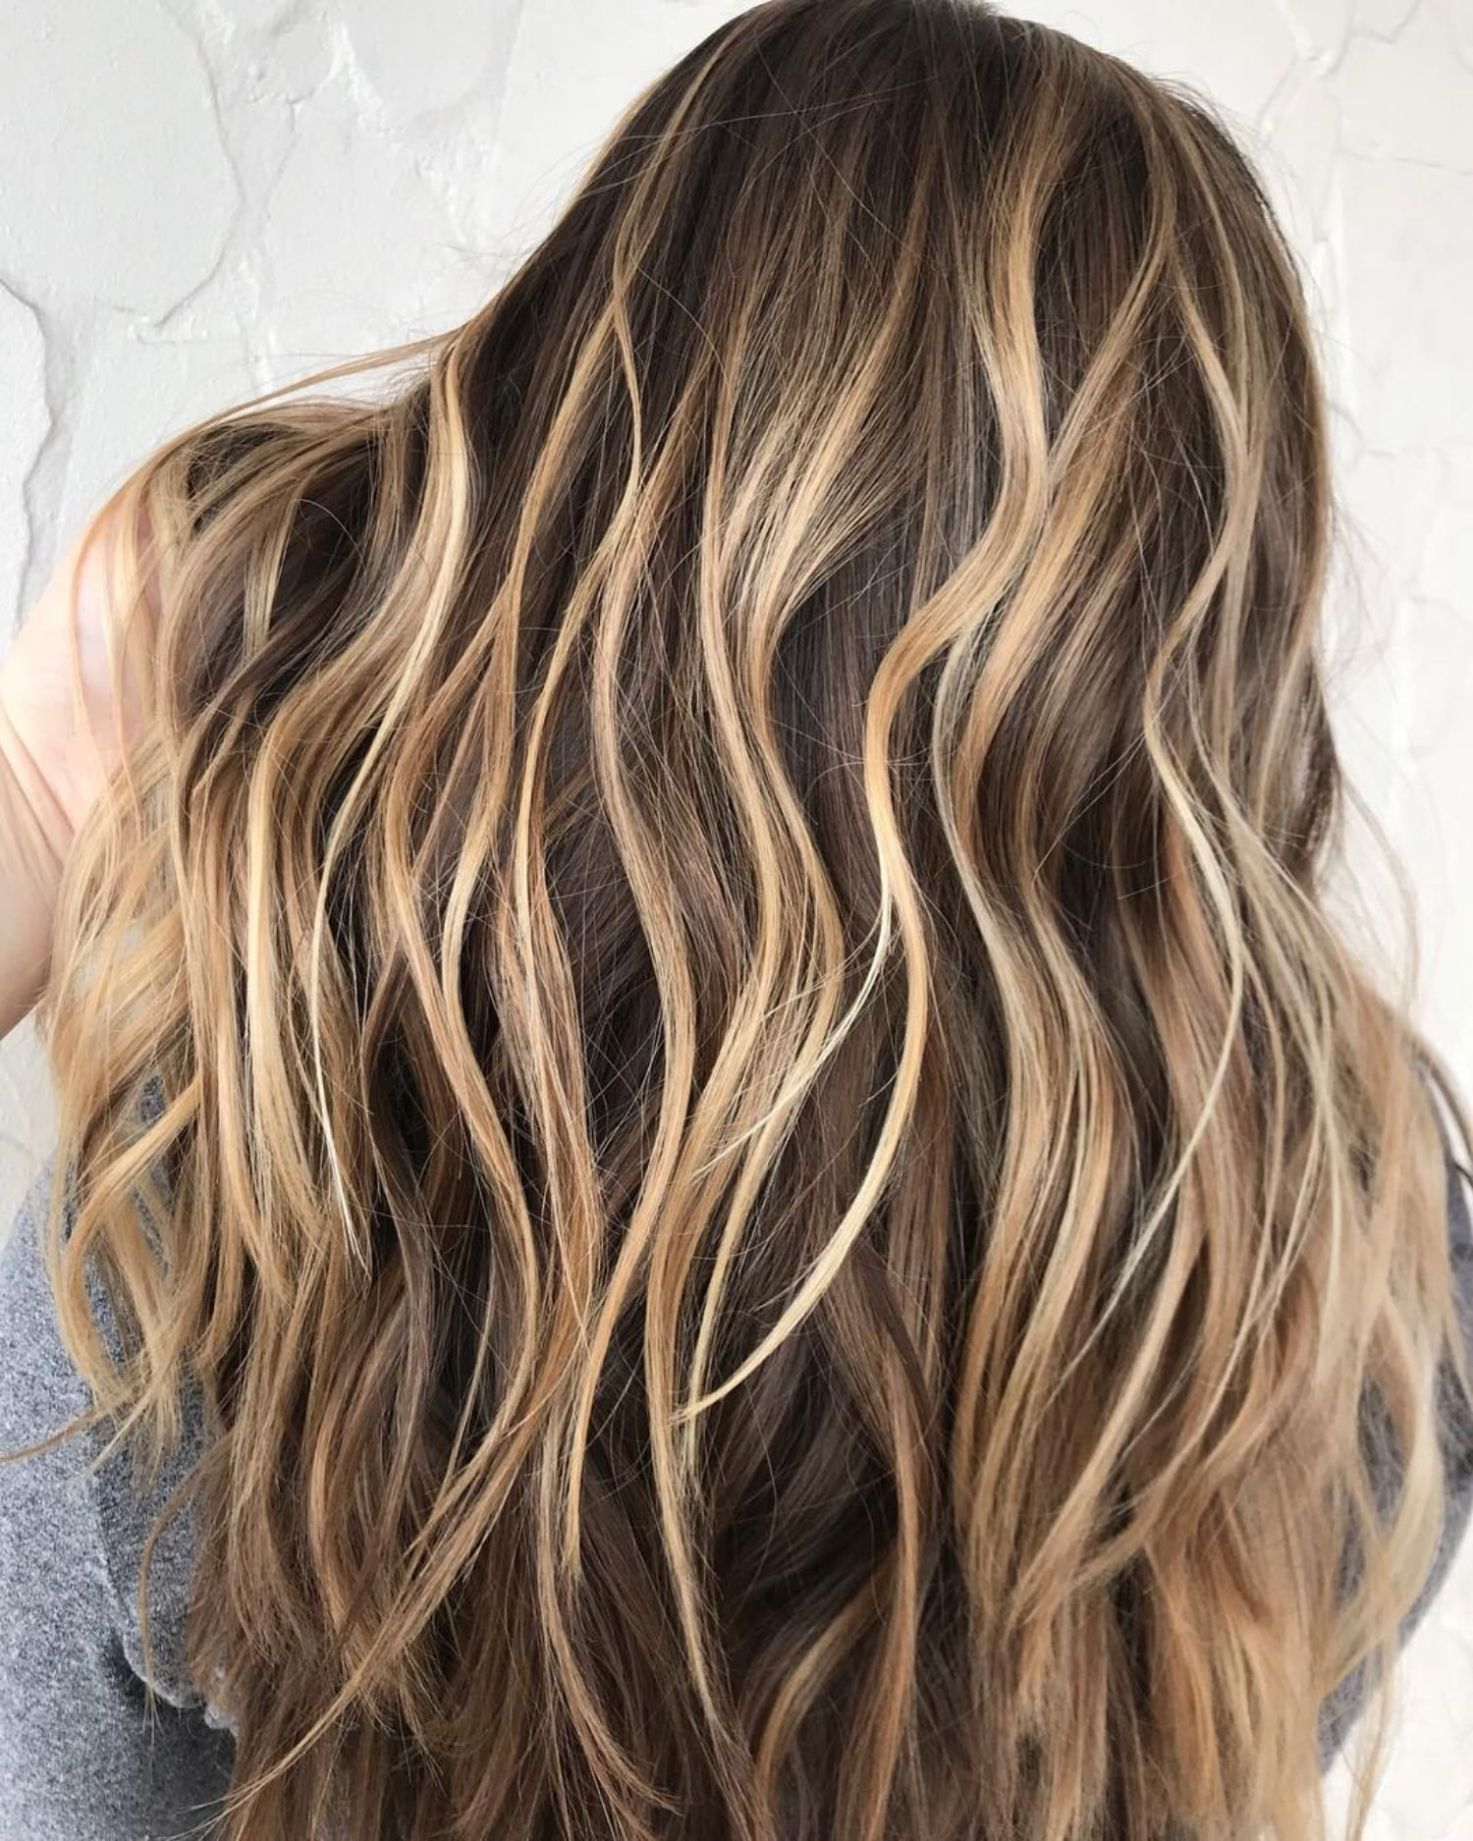 50 Ideas For Light Brown Hair With Highlights And Lowlights Brown Hair With Highlights And Lowlights Brown Hair With Highlights Hair Highlights